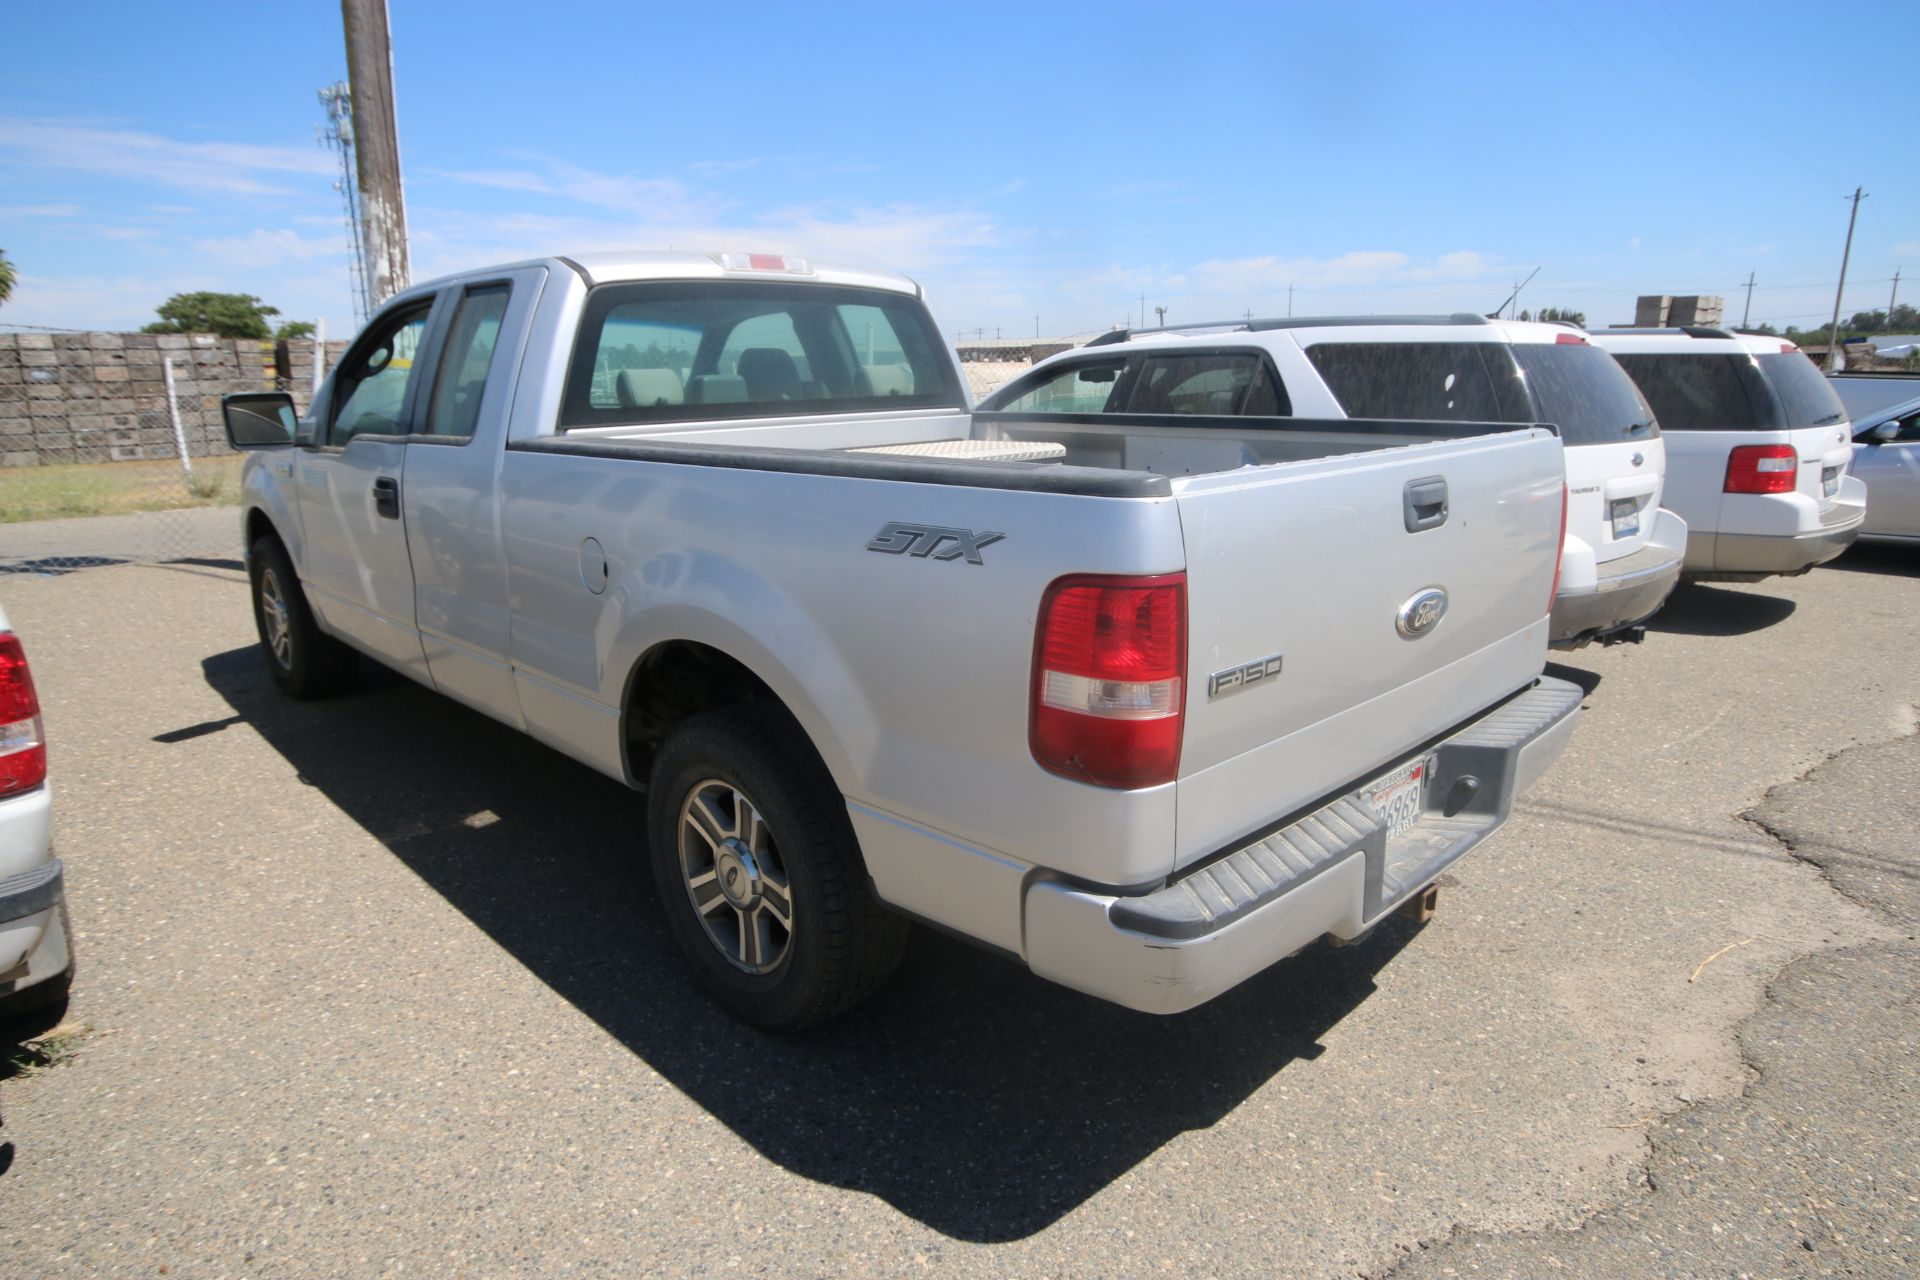 2008 Ford F150 Pick Up Truck, VIN #: 1FTRX12W7BFB9710, with 214,817 Miles, Started Up as of 06/24/ - Image 4 of 24